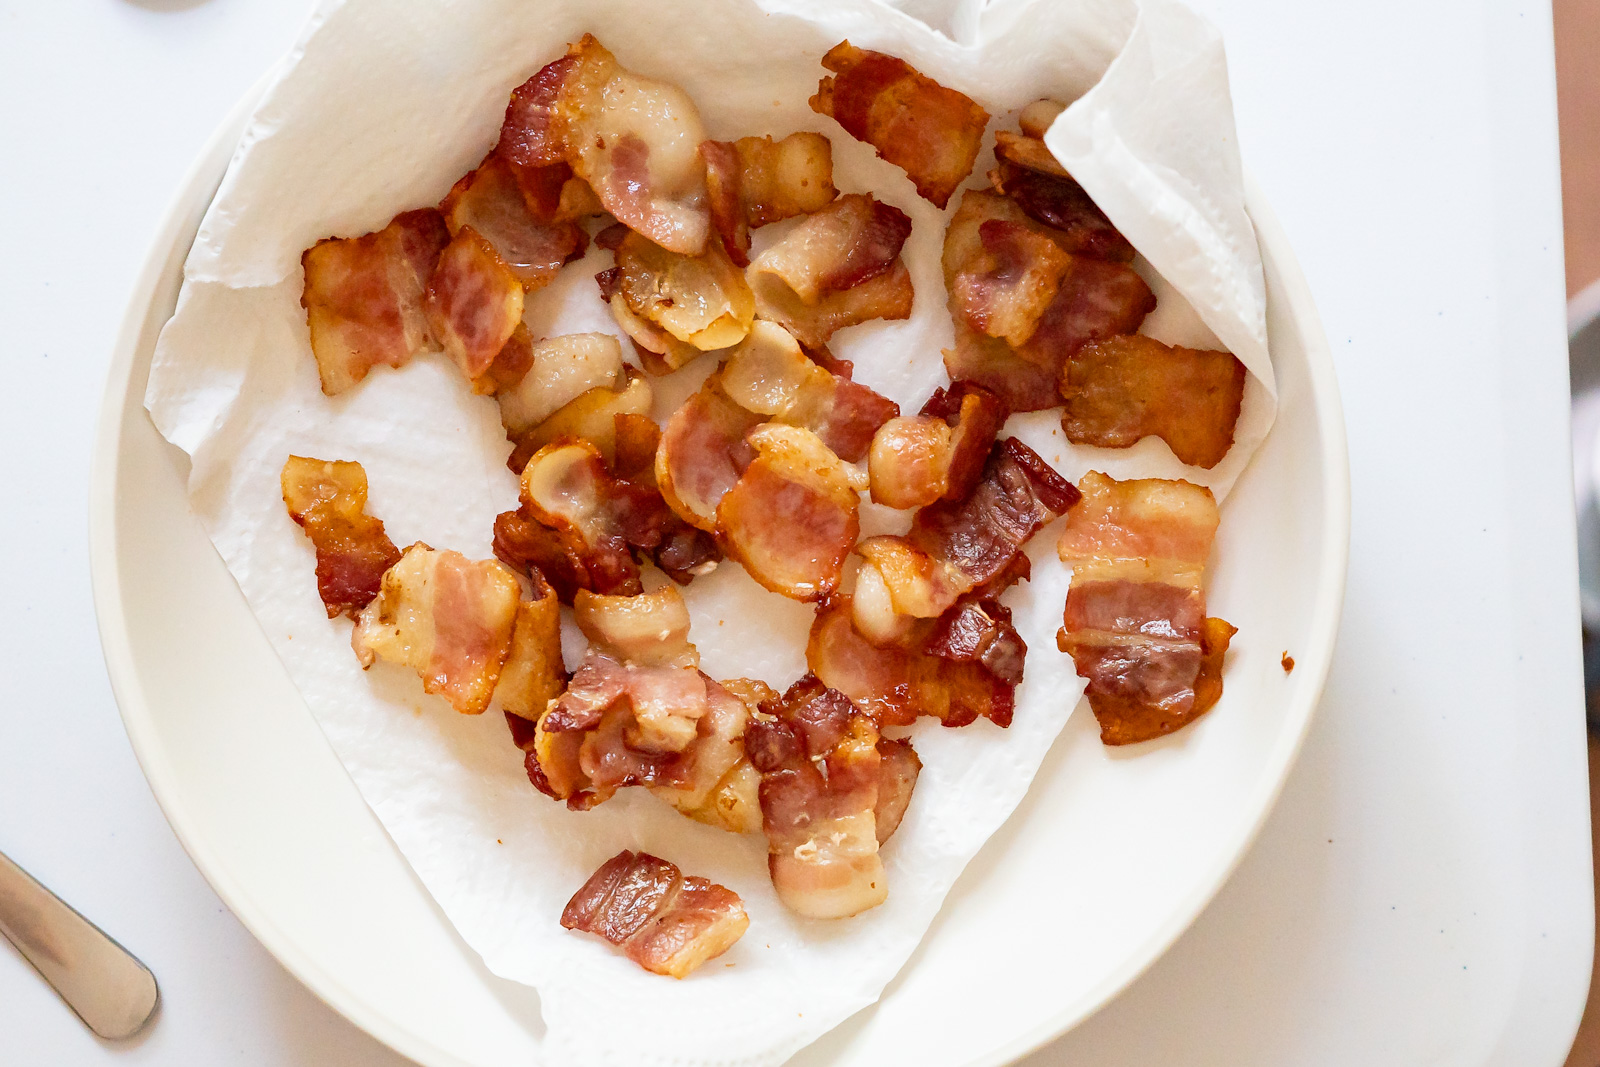 Overhead view of bacon pieces freshly crisped on a paper towel lined plate.